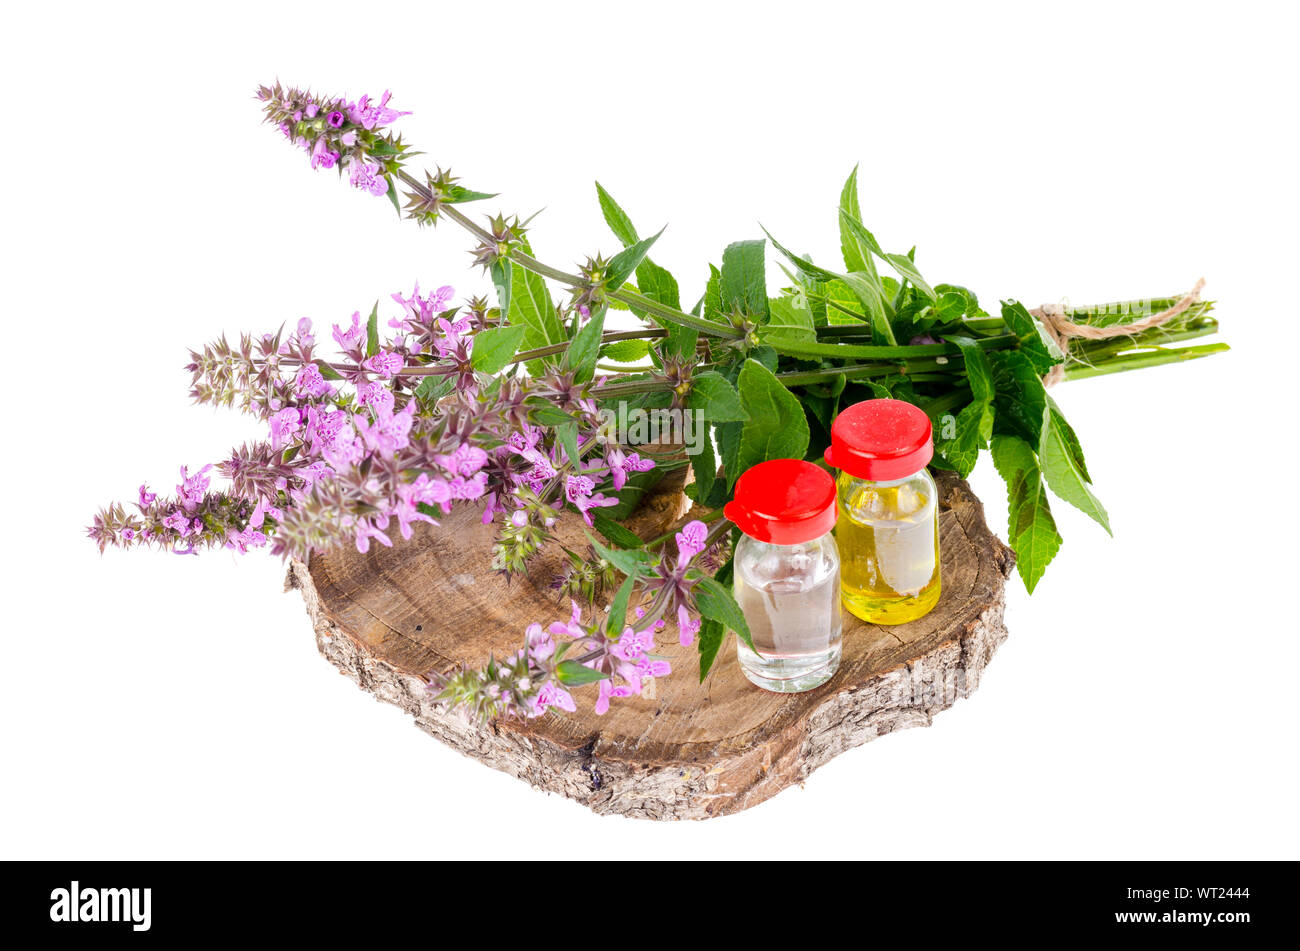 Pharmaceutical tincture, extract of wild herbs, medicinal flowers in medical bottles. Studio Photo Stock Photo